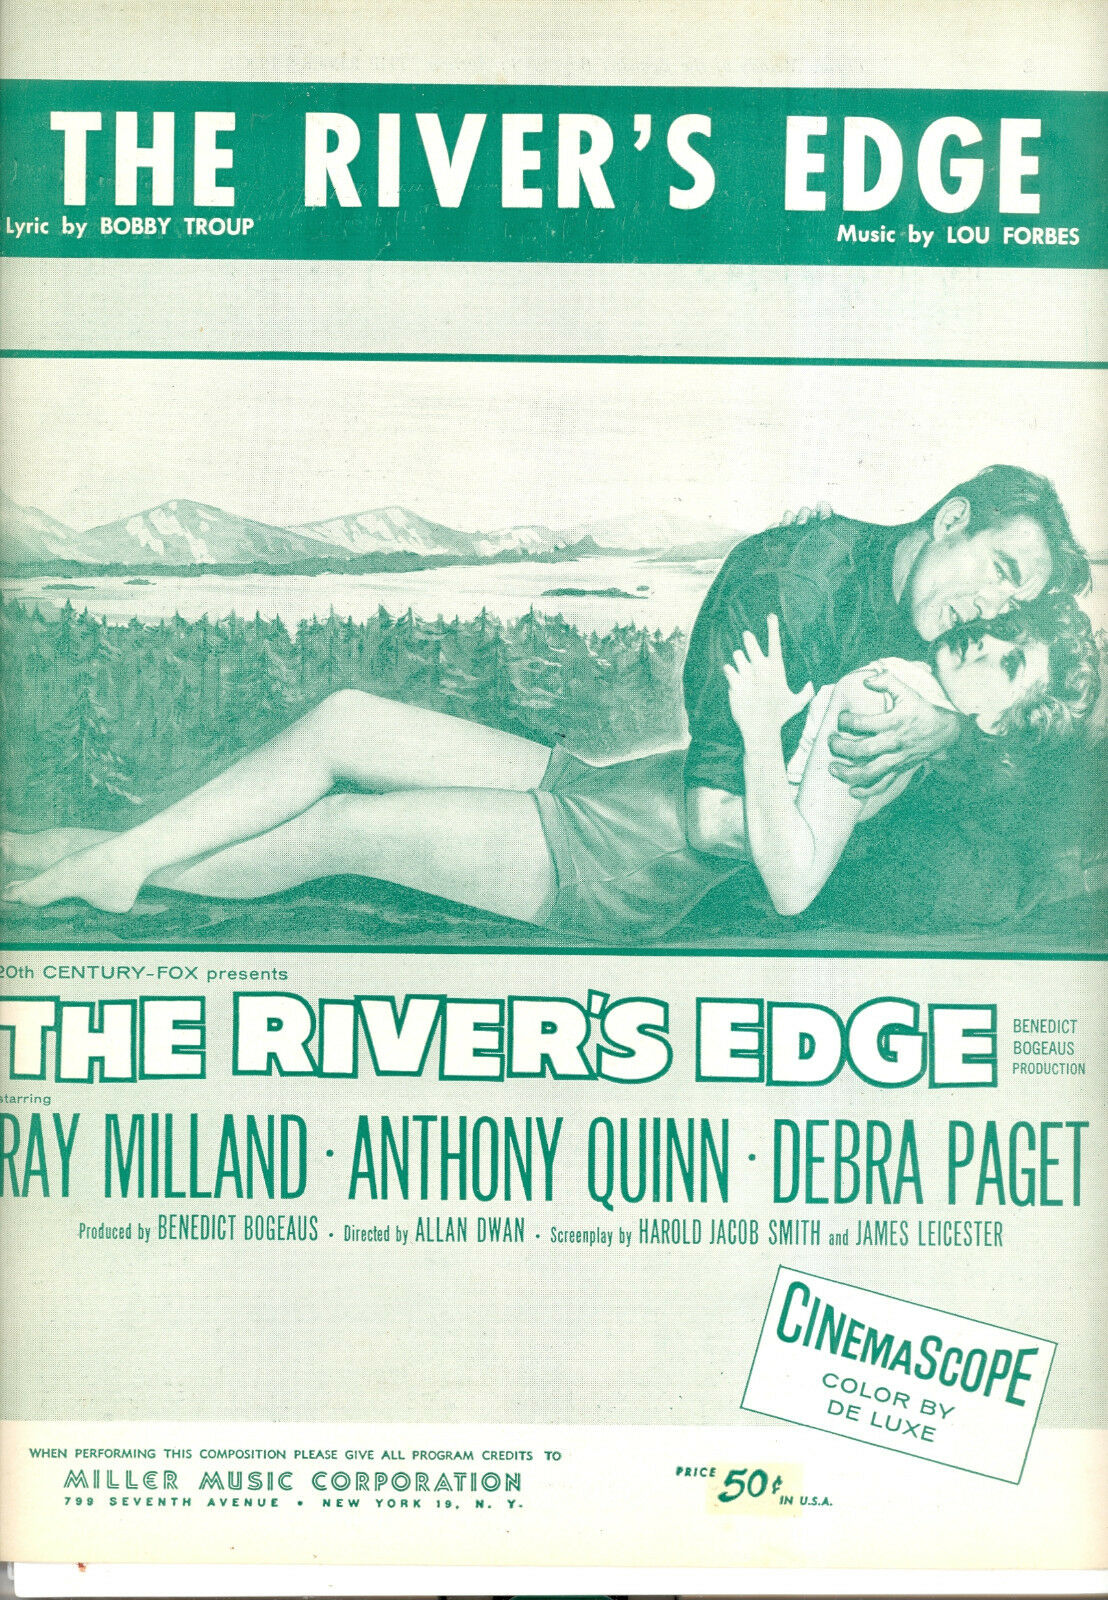 The RIVER'S EDGE Blatt Musik   River's Edge   Debra Paget Anthony